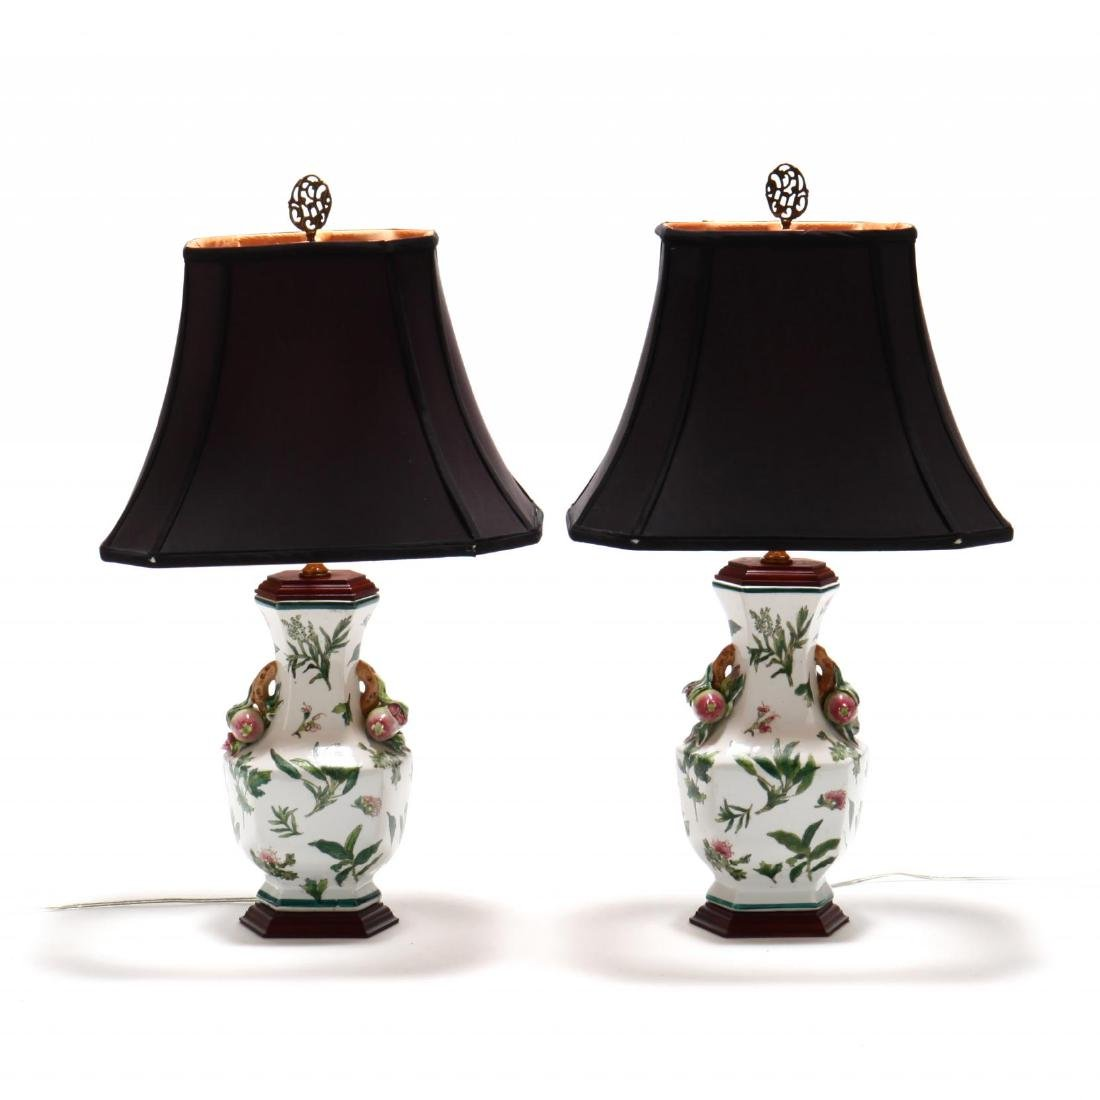 Pair of Chinese Export Table Lamps